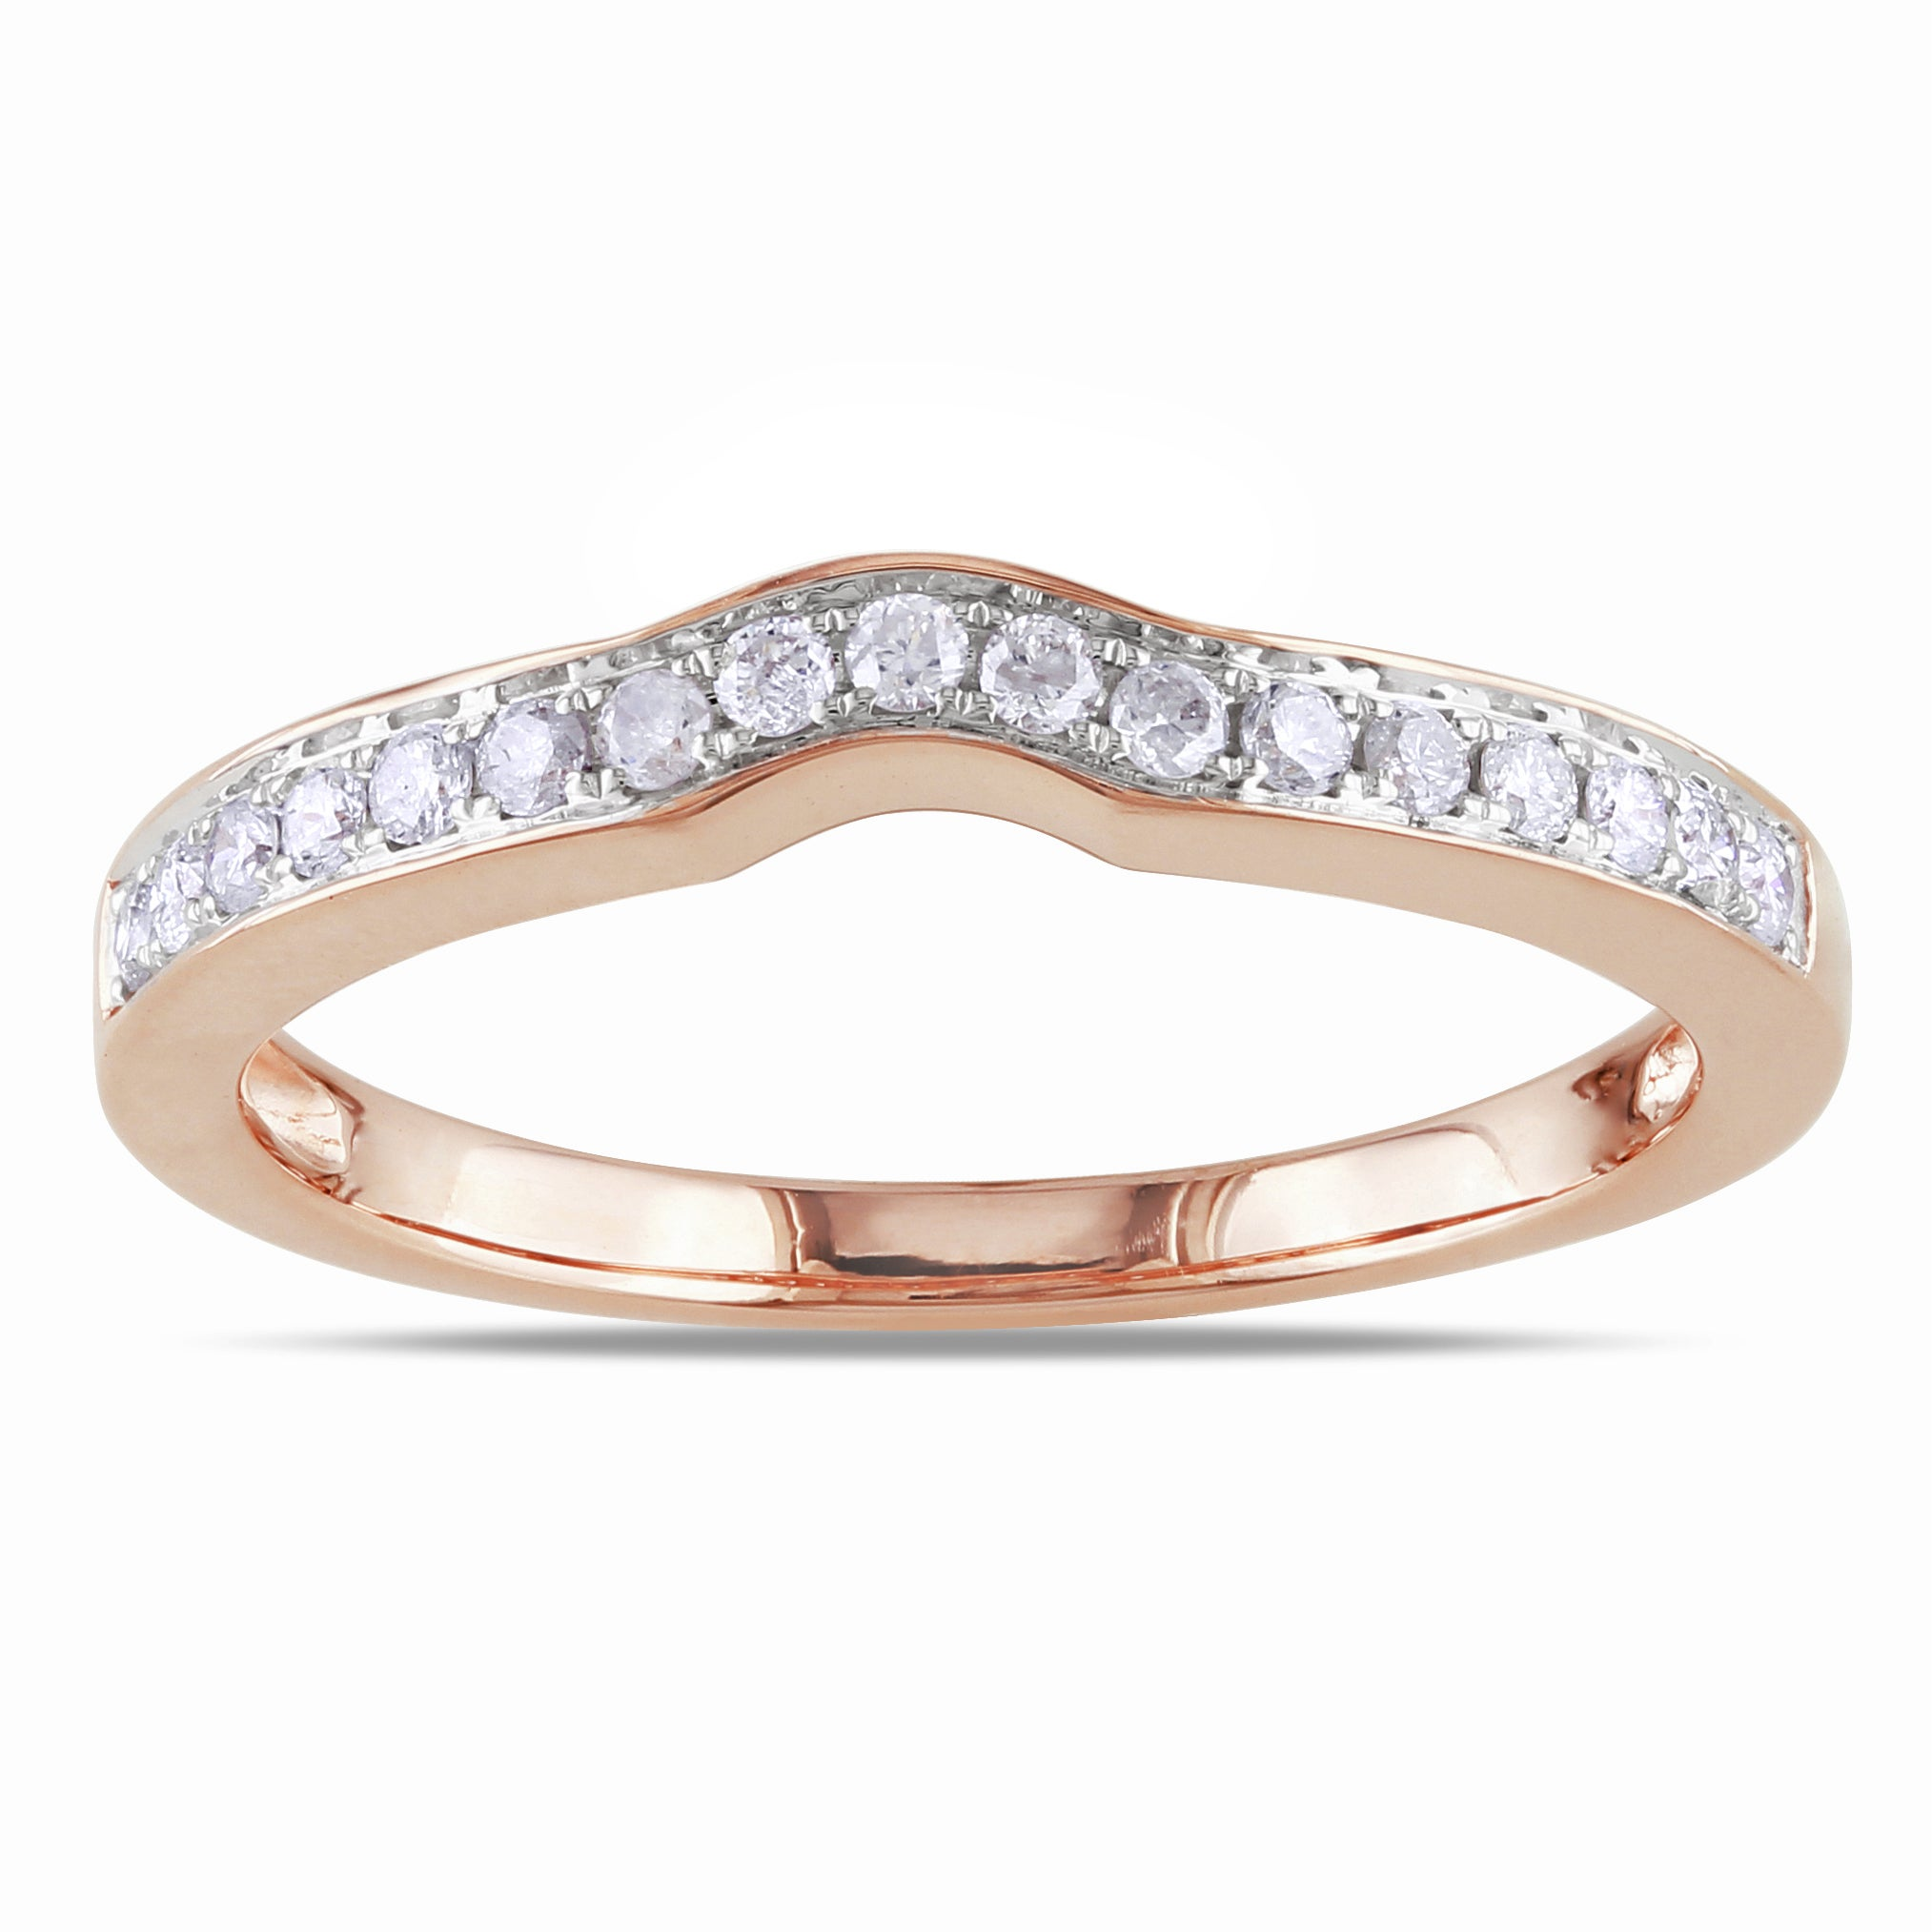 Miadora 14k Rose Gold 1/4ct TDW Diamond Wedding Band (G-H, I1-I2) at Sears.com